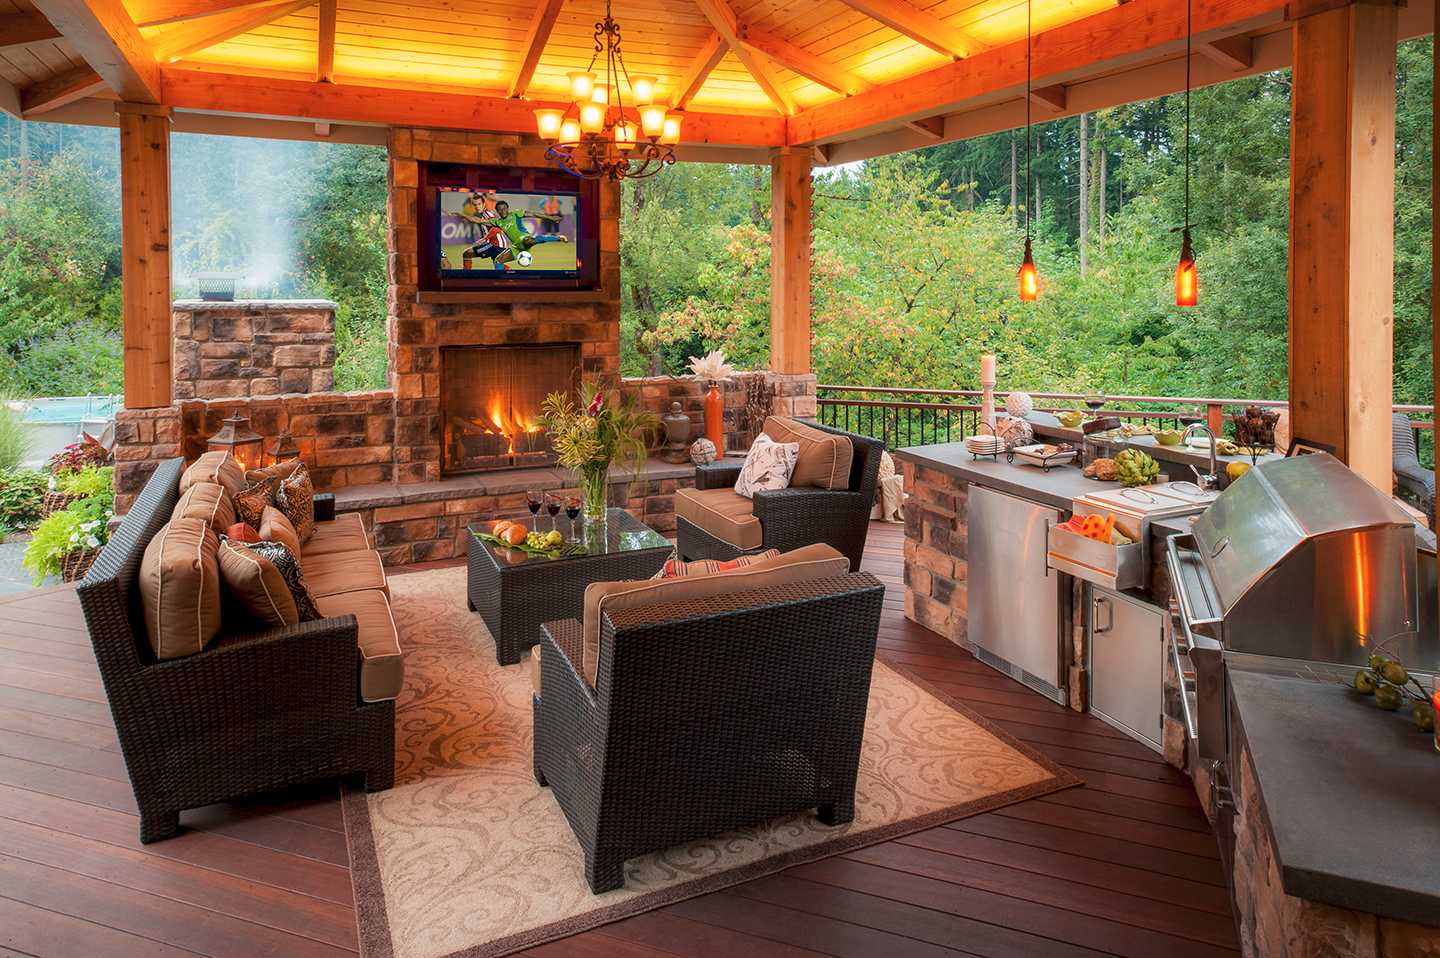 How to Build an Amazing (and affordable) Outdoor Kitchen